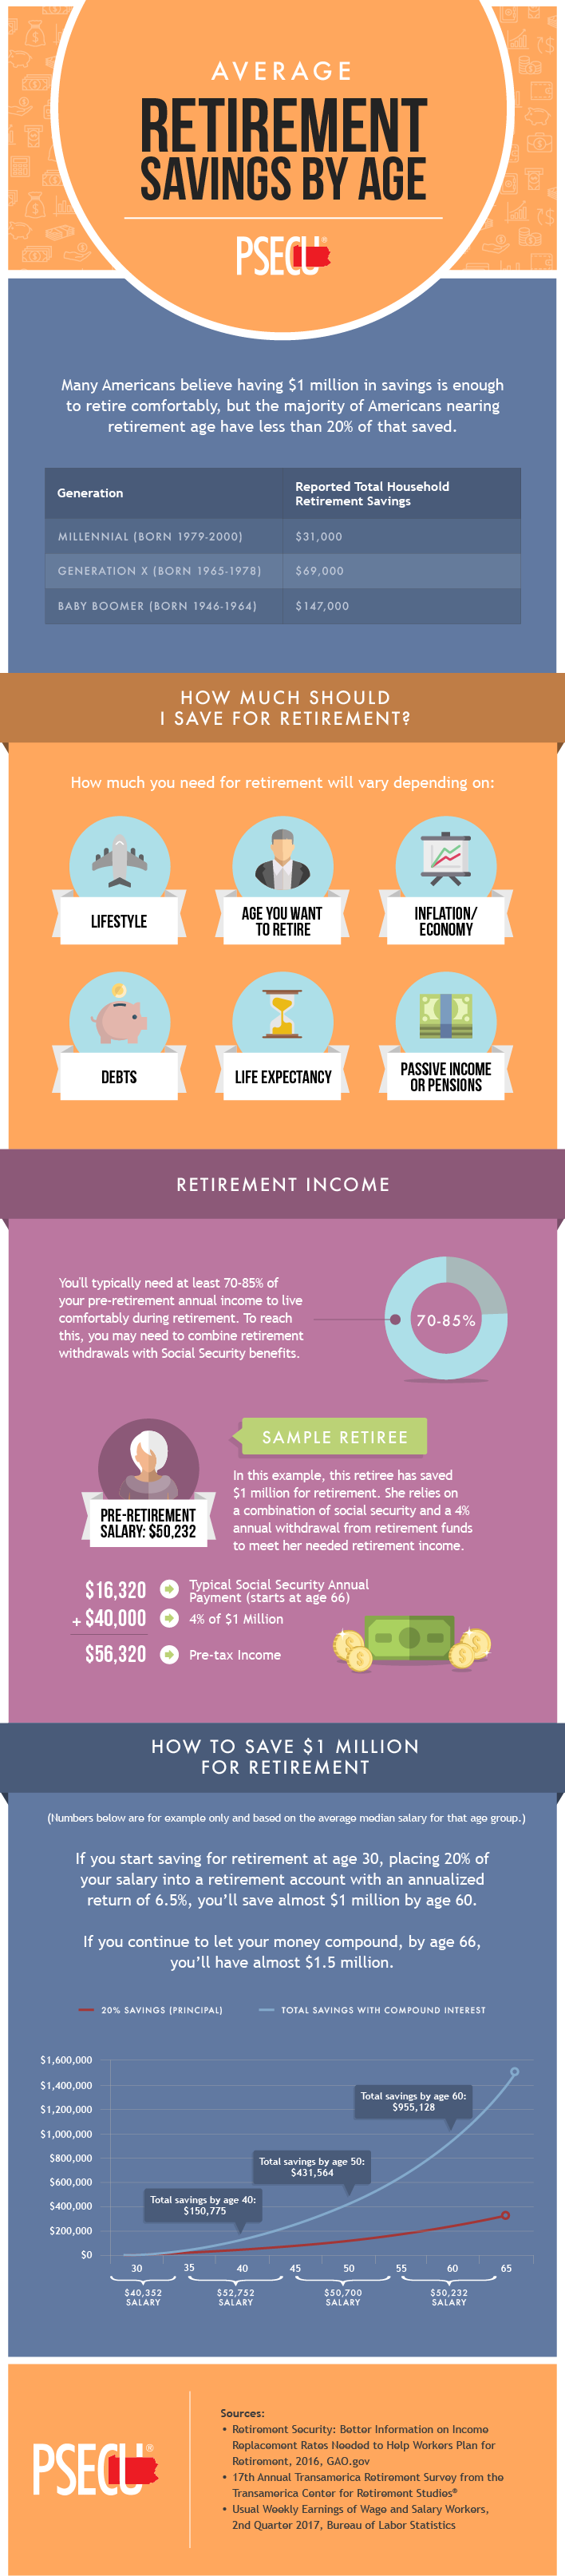 This information about saving for retirement is really interesting and easy to understand!  And it breaks down how to do it.   sponsored pin by PSECU